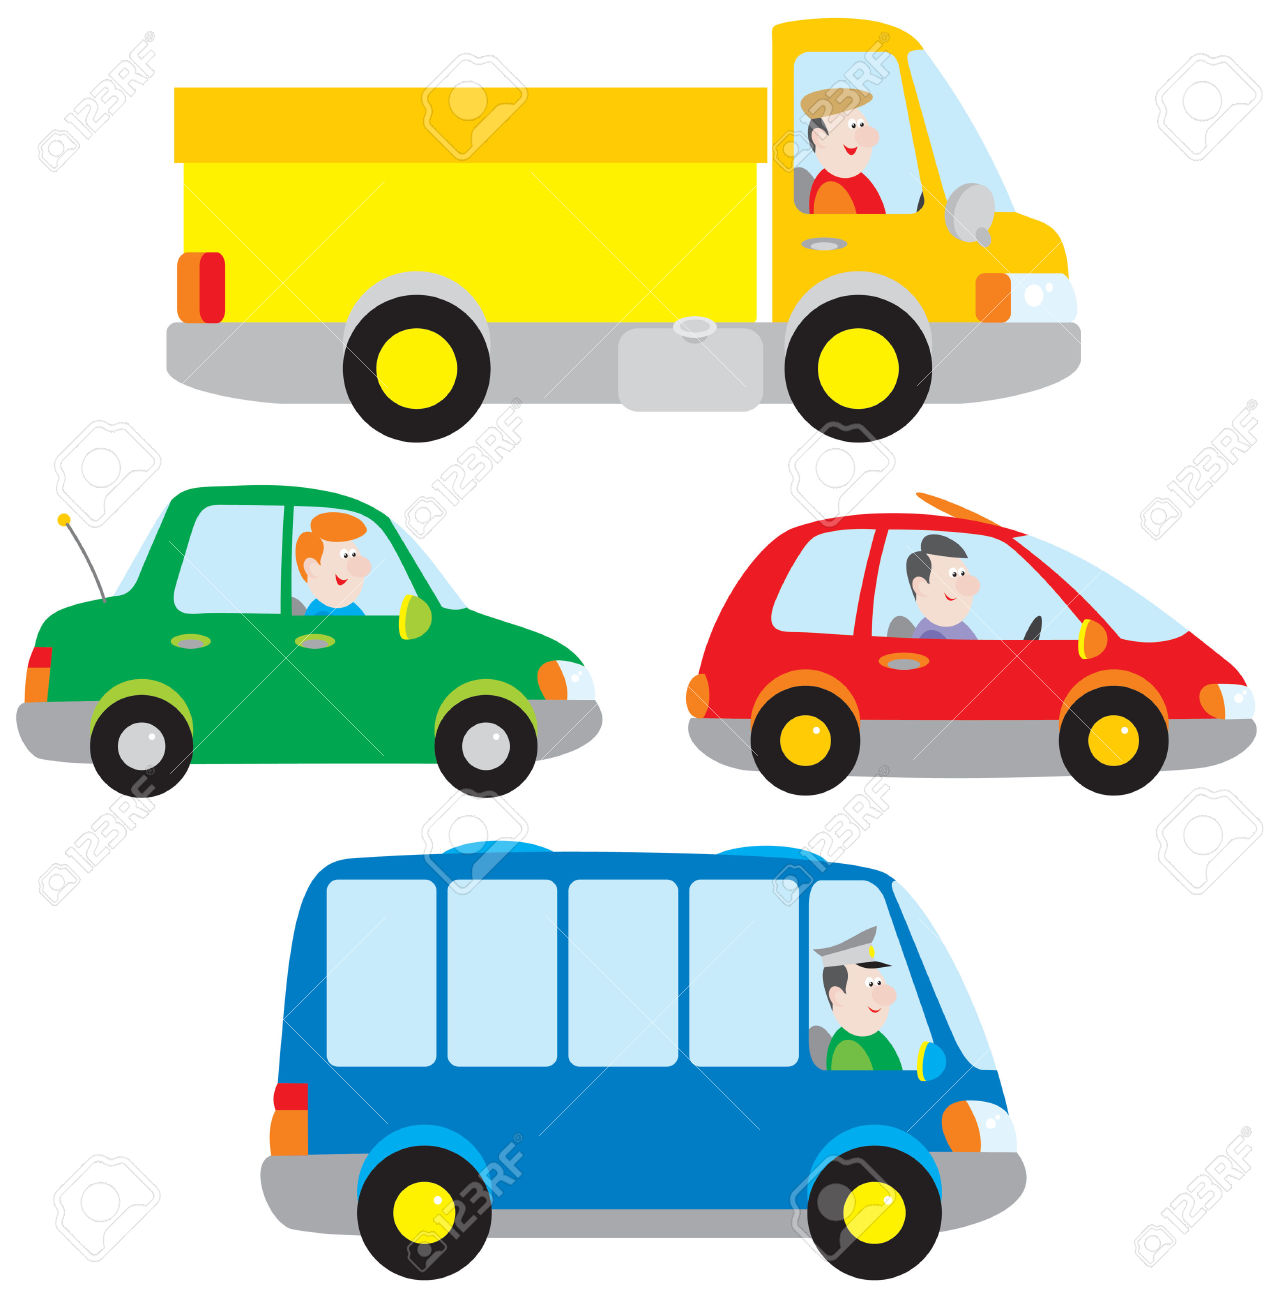 Cars, Truck And Bus Royalty Free Cliparts, Vectors, And Stock.